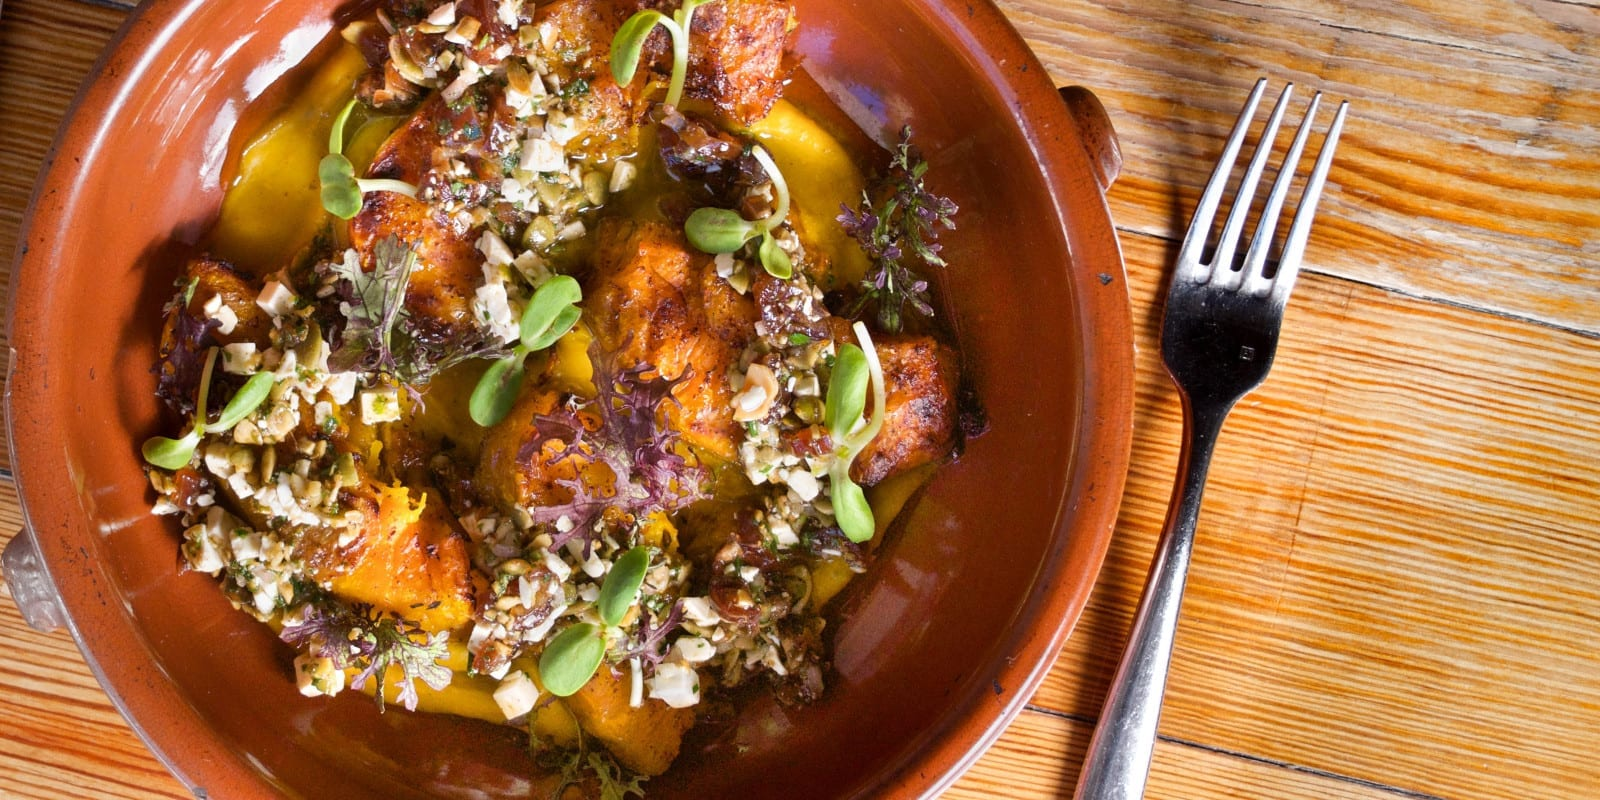 A Pumpkin Dish You Don't Want to Miss